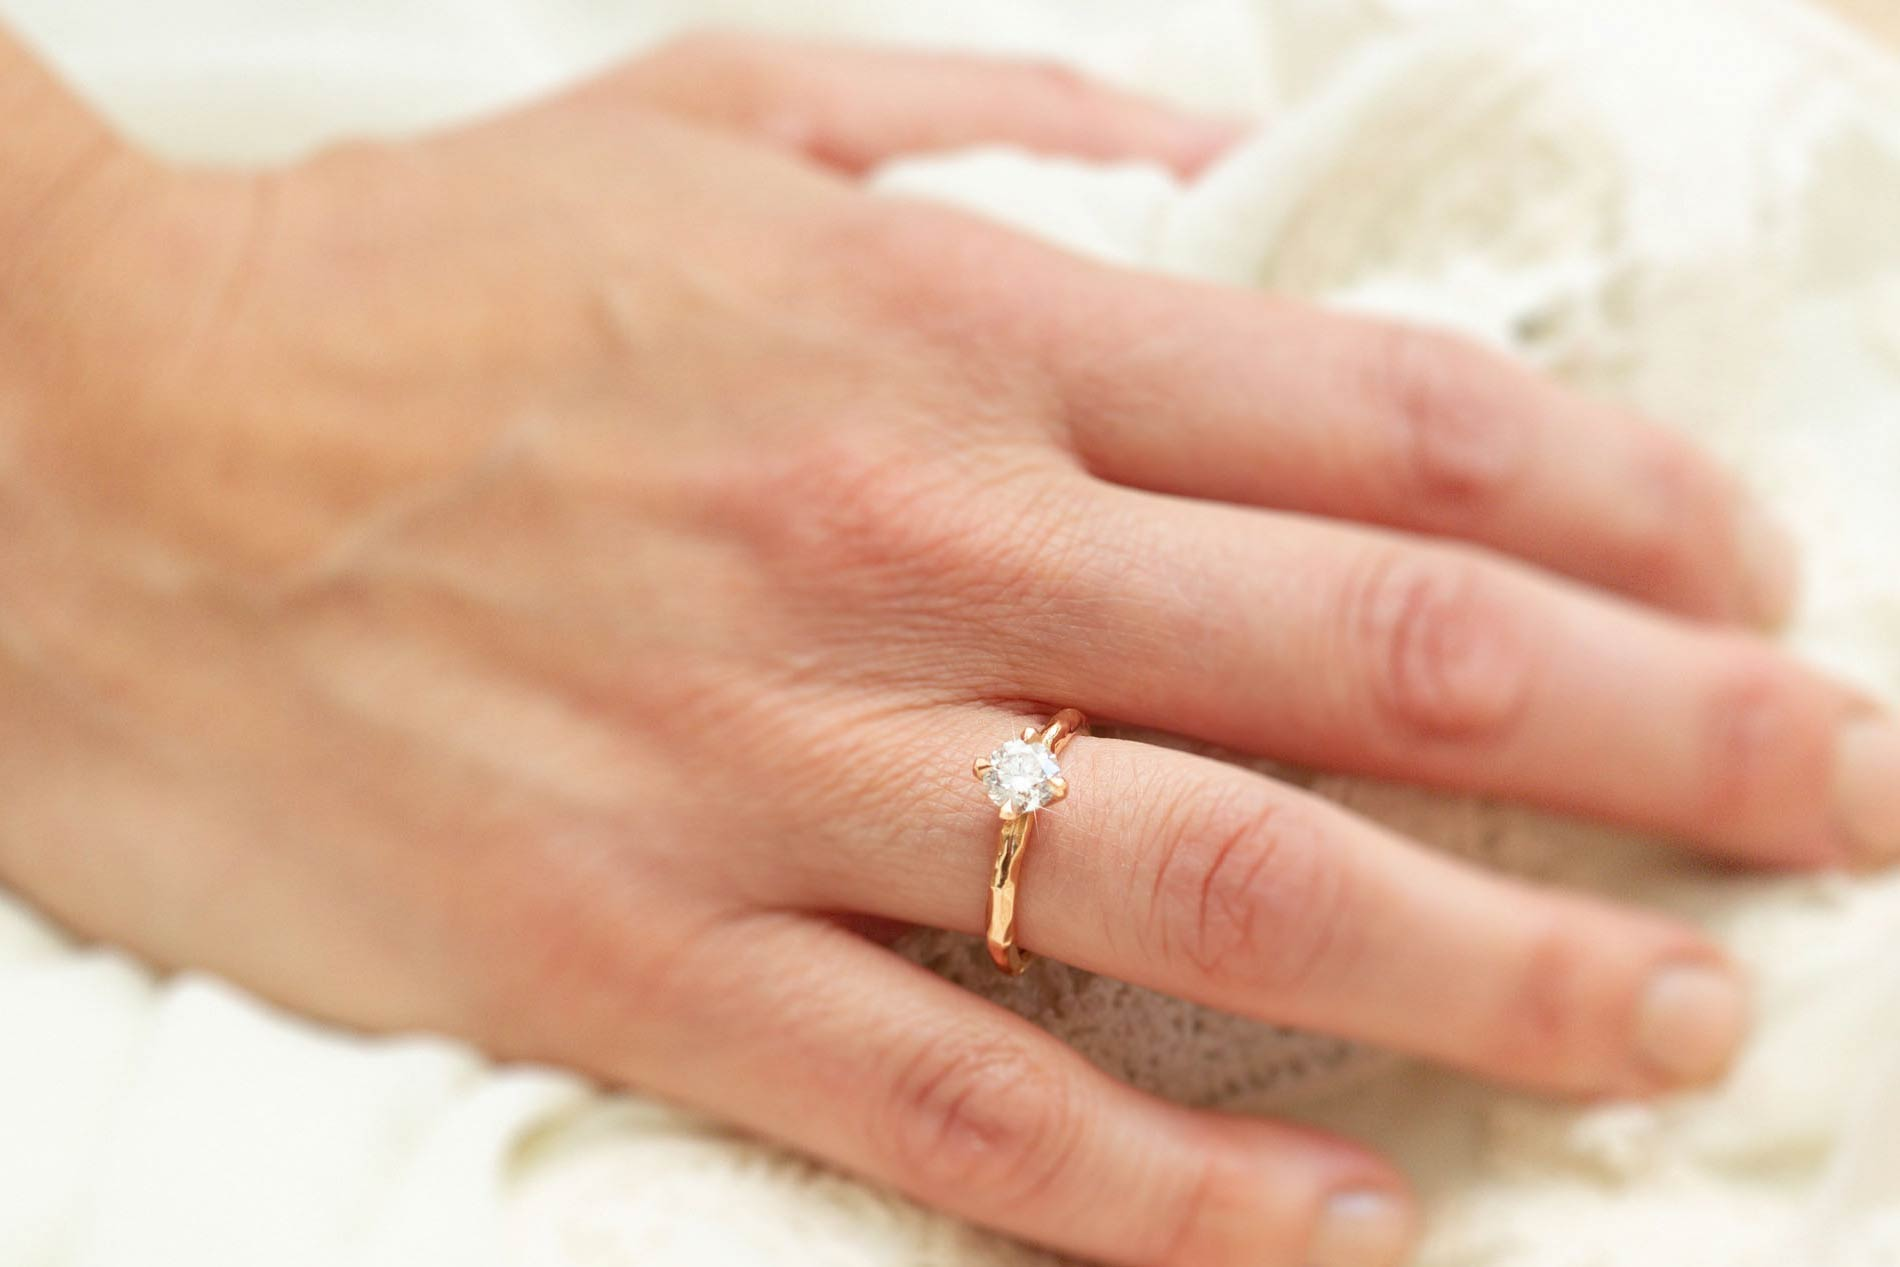 Ring in 18kt champagne wit goud met ovale champagne kleurige diamant